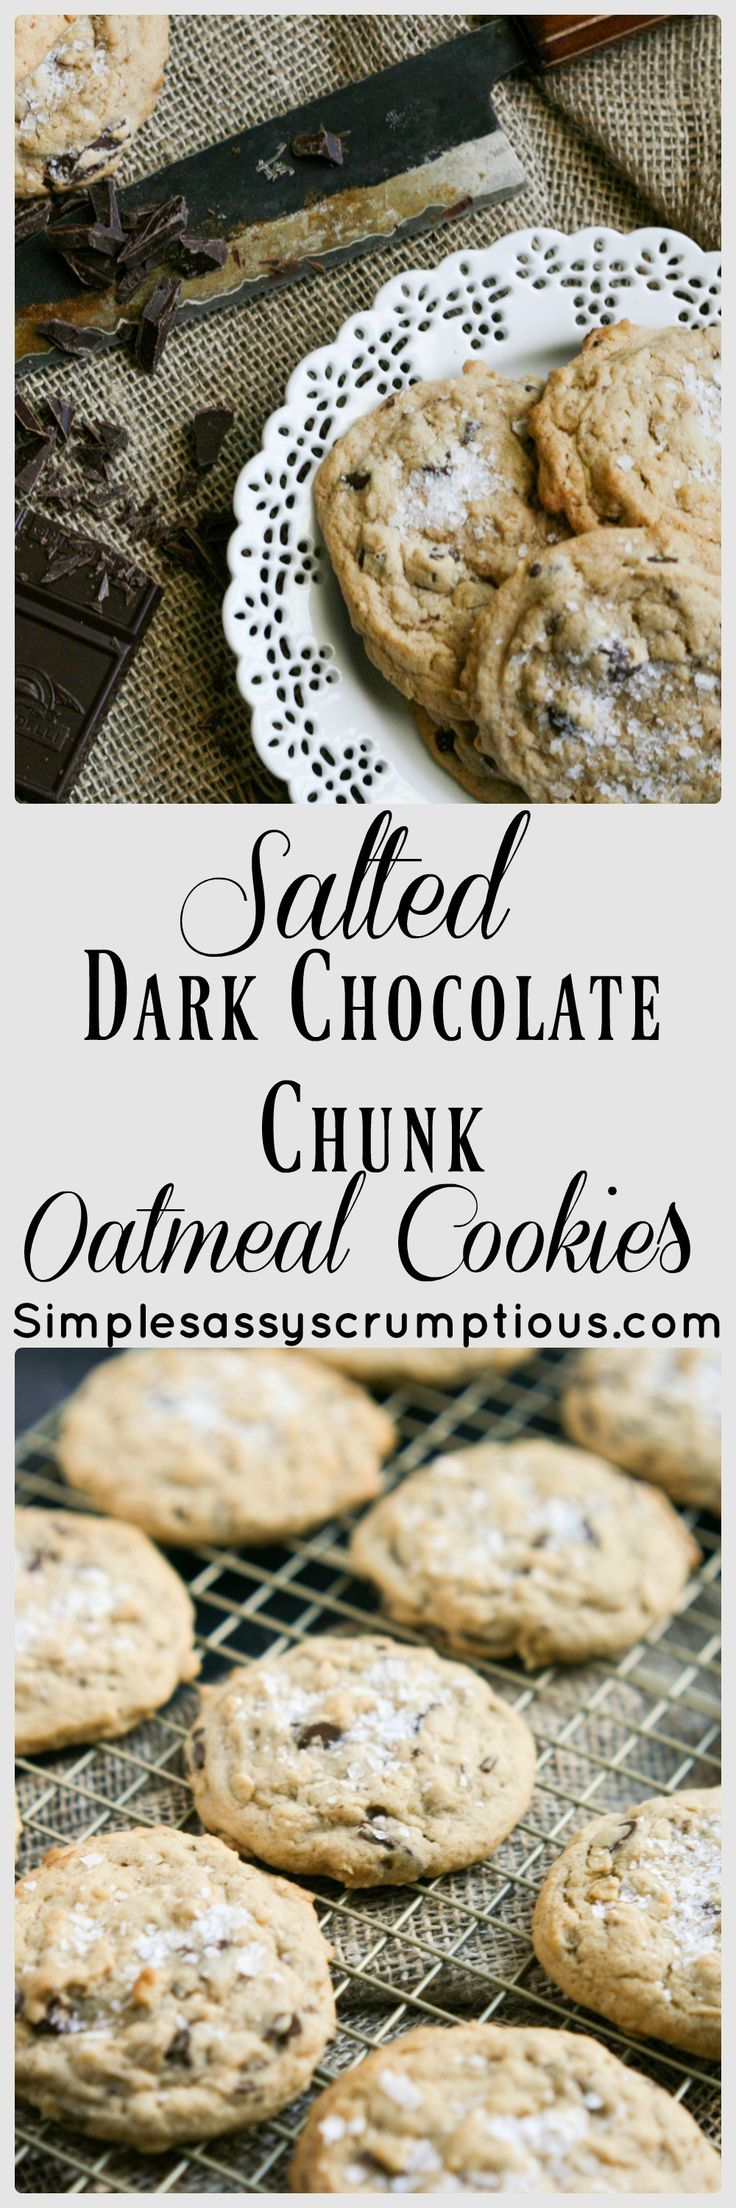 Salted Dark Chocolate Chunk Oatmeal Cookies. Decadent dark chocolate cookies with a hint of flaked sea salt goodness sprinkled on top.